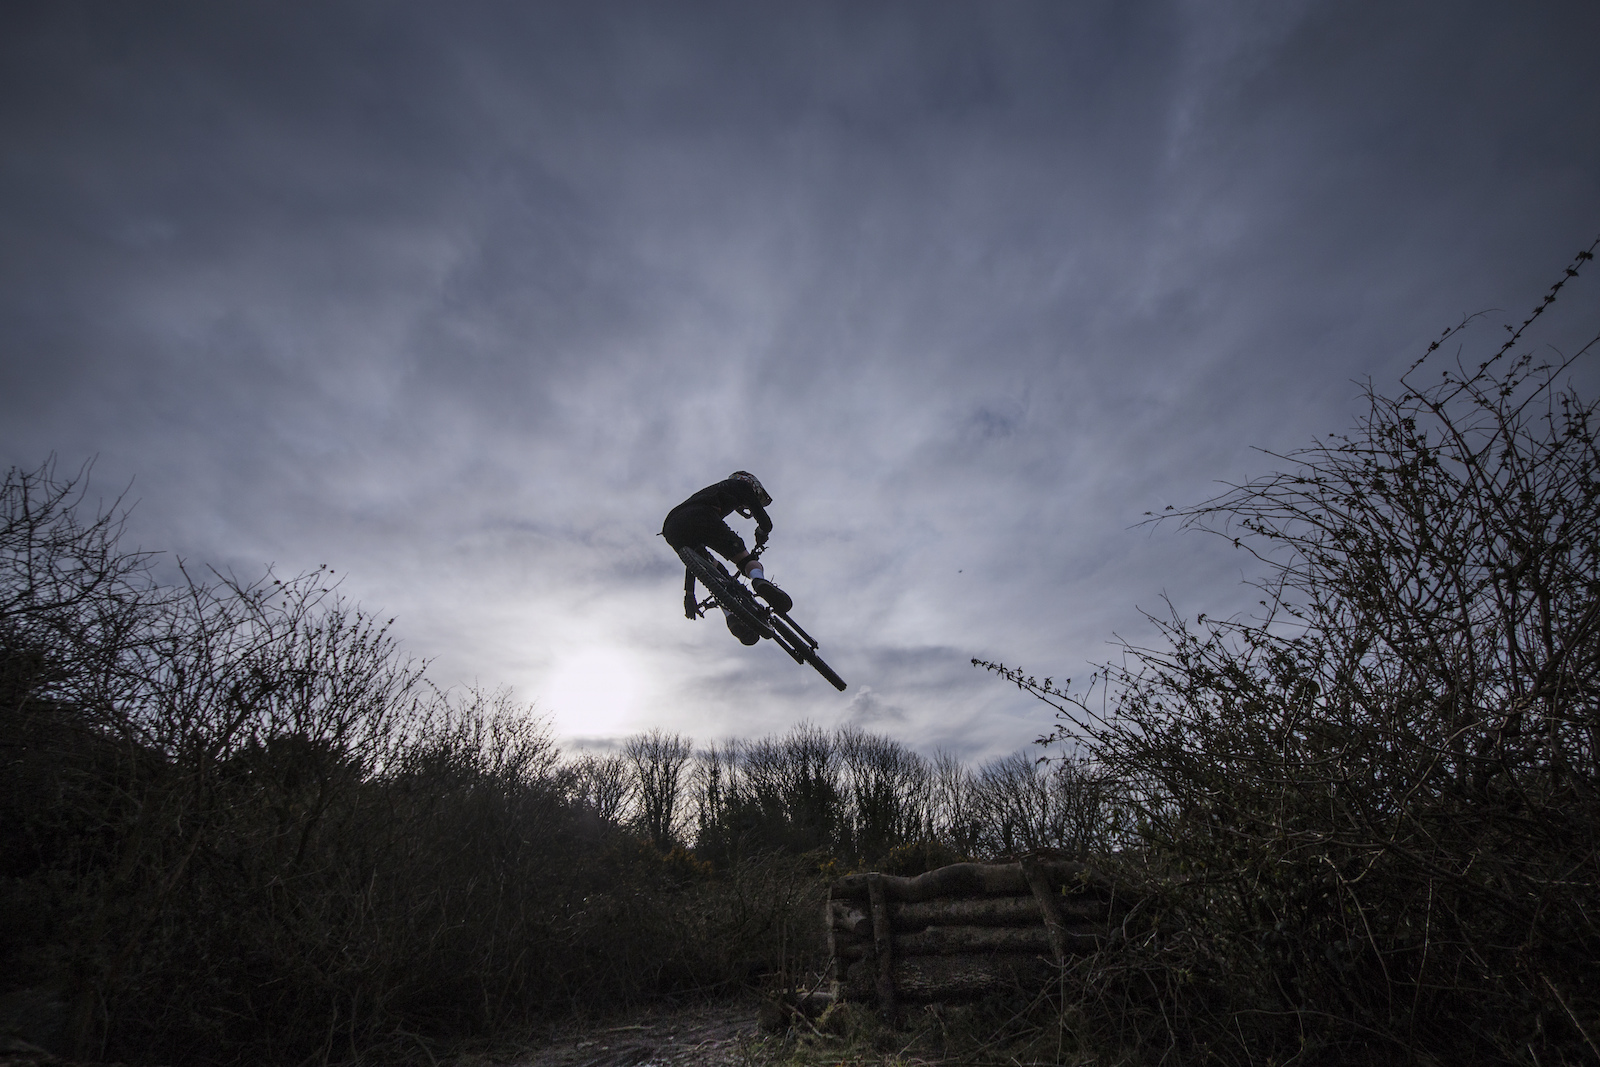 I was about to pack up and go home...until young Toby Peters turns up on his santa cruz Nomad, then preceeds to jump everything in sight. So again wanting to shoot wide I started capturing the scene at 10mm. As light fell i managed to nail this shot, dark and moody.